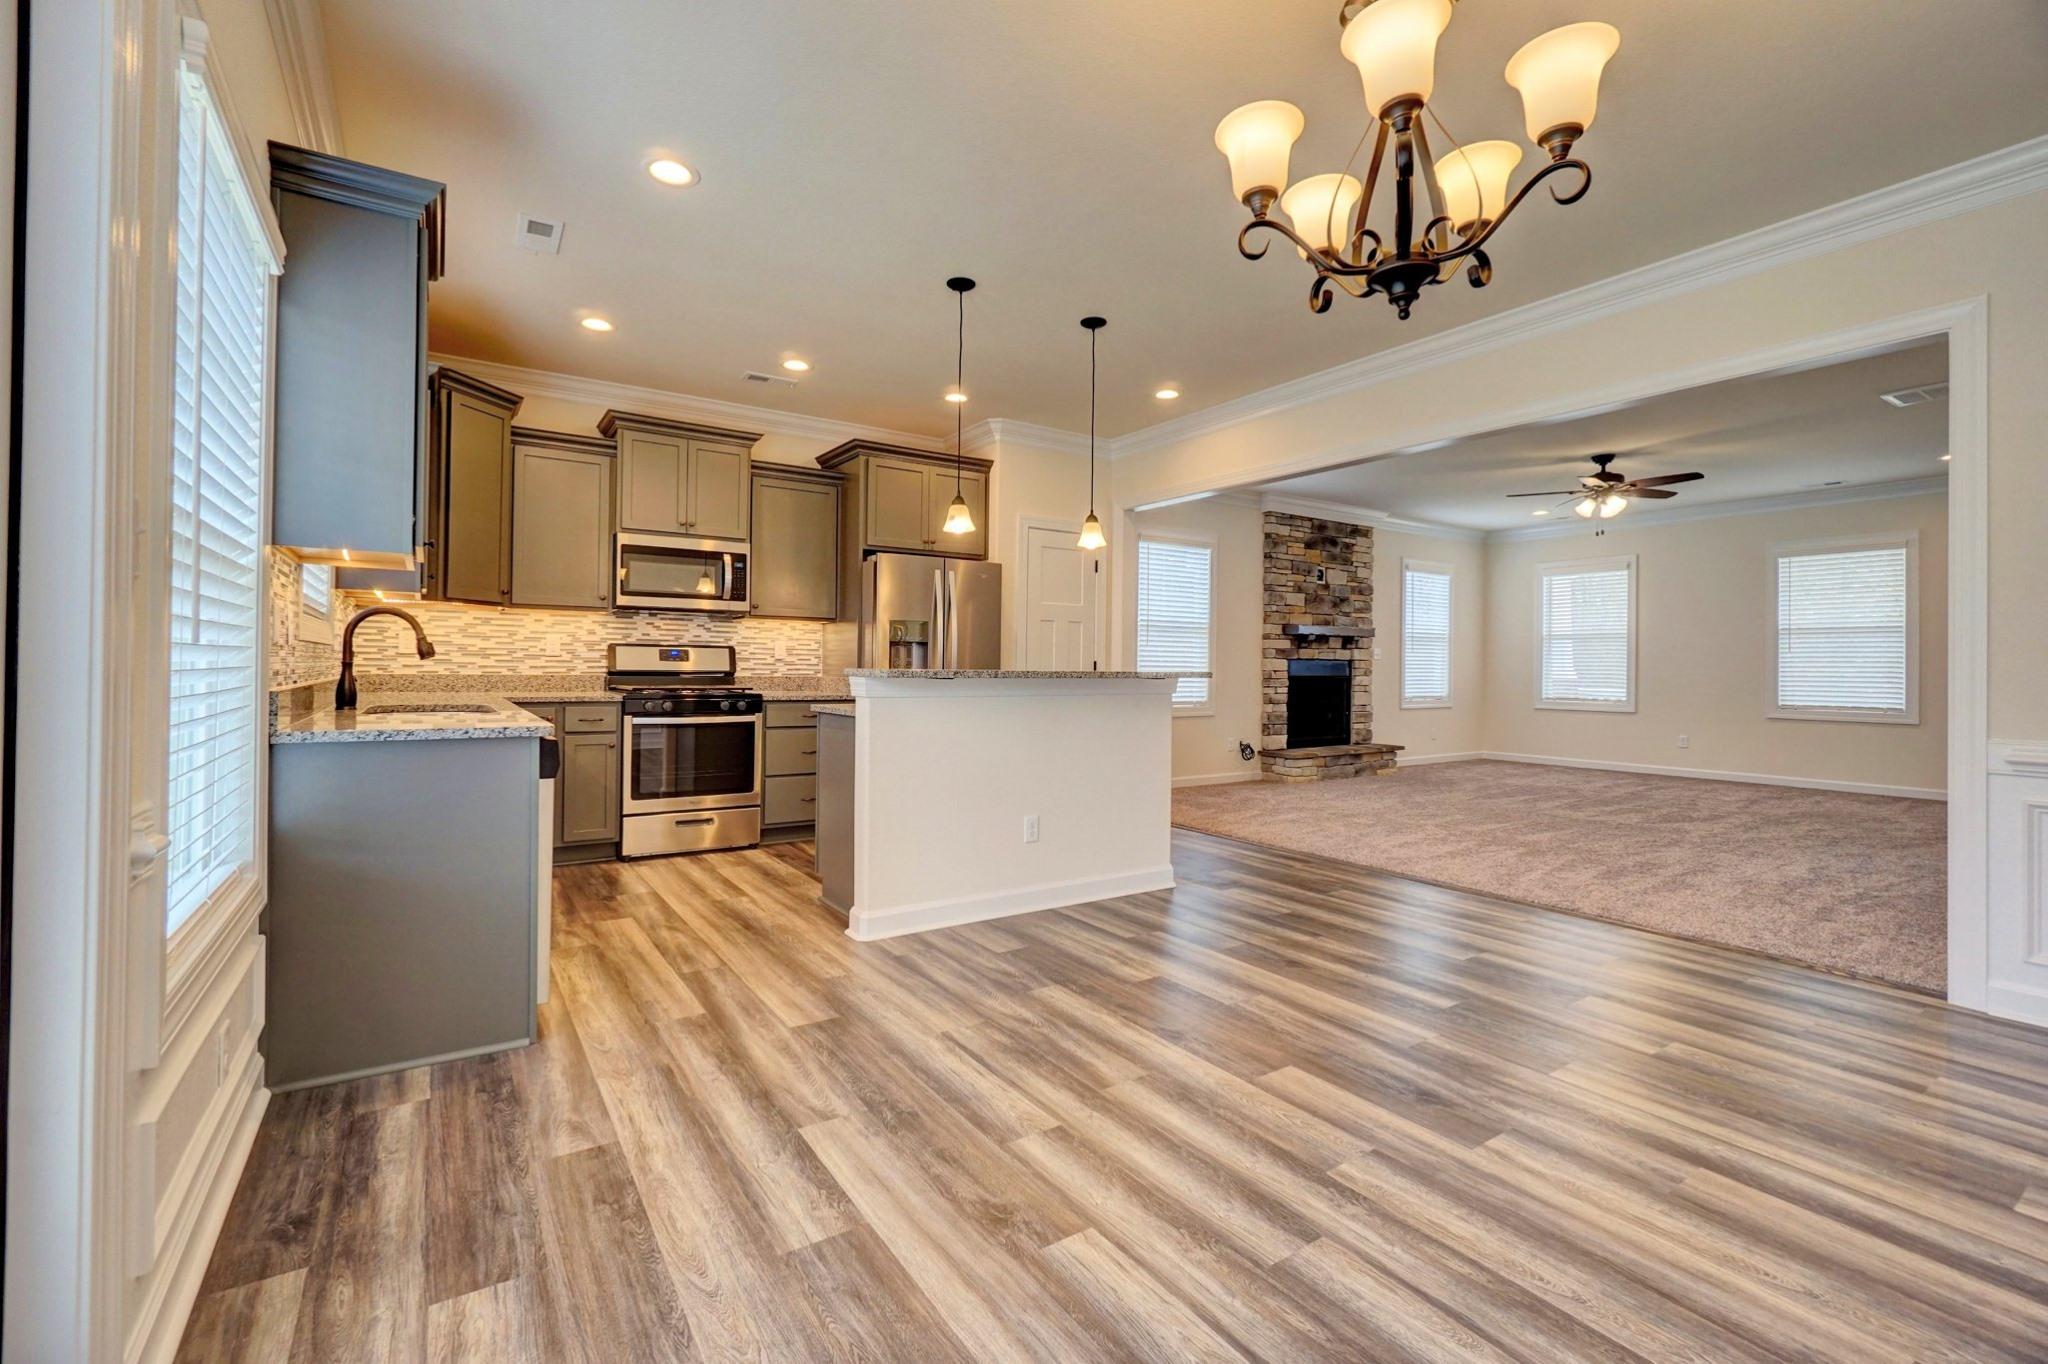 AB Homes The Kitty Hawk floor plan living room, stone fireplace and kitchen with stainless steel appliances